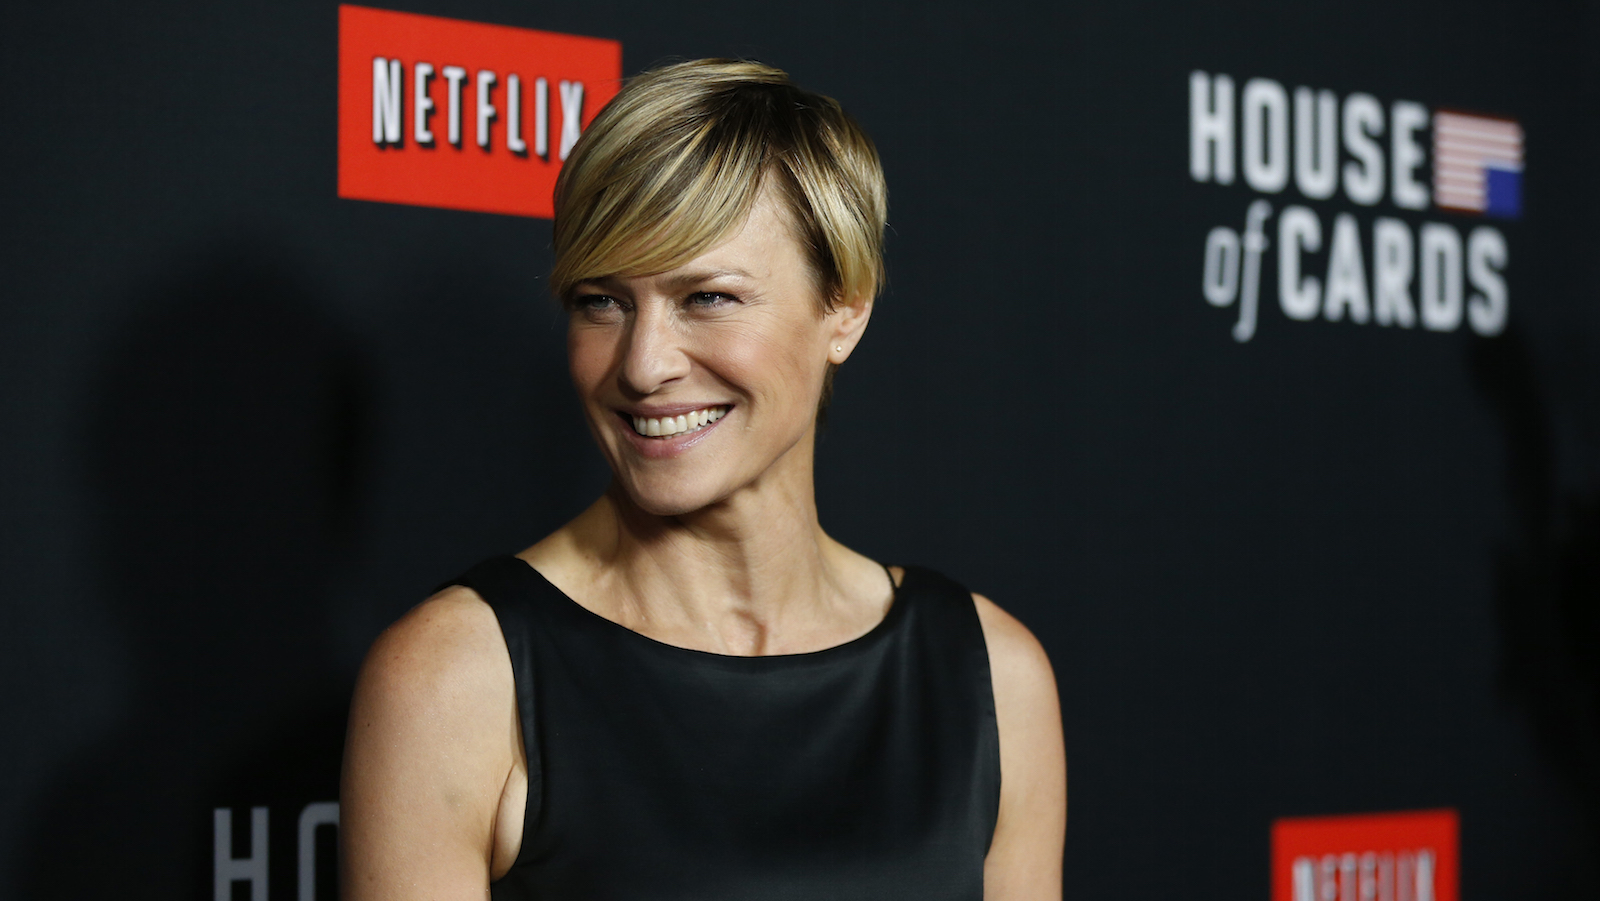 """Cast member Robin Wright poses at the premiere for the second season of the television series """"House of Cards"""" at the Directors Guild of America in Los Angeles, California February 13, 2014. Season 2 premieres on Netflix on February 14.   REUTERS/Mario Anzuoni  (UNITED STATES - Tags: ENTERTAINMENT) - RTX18SII"""